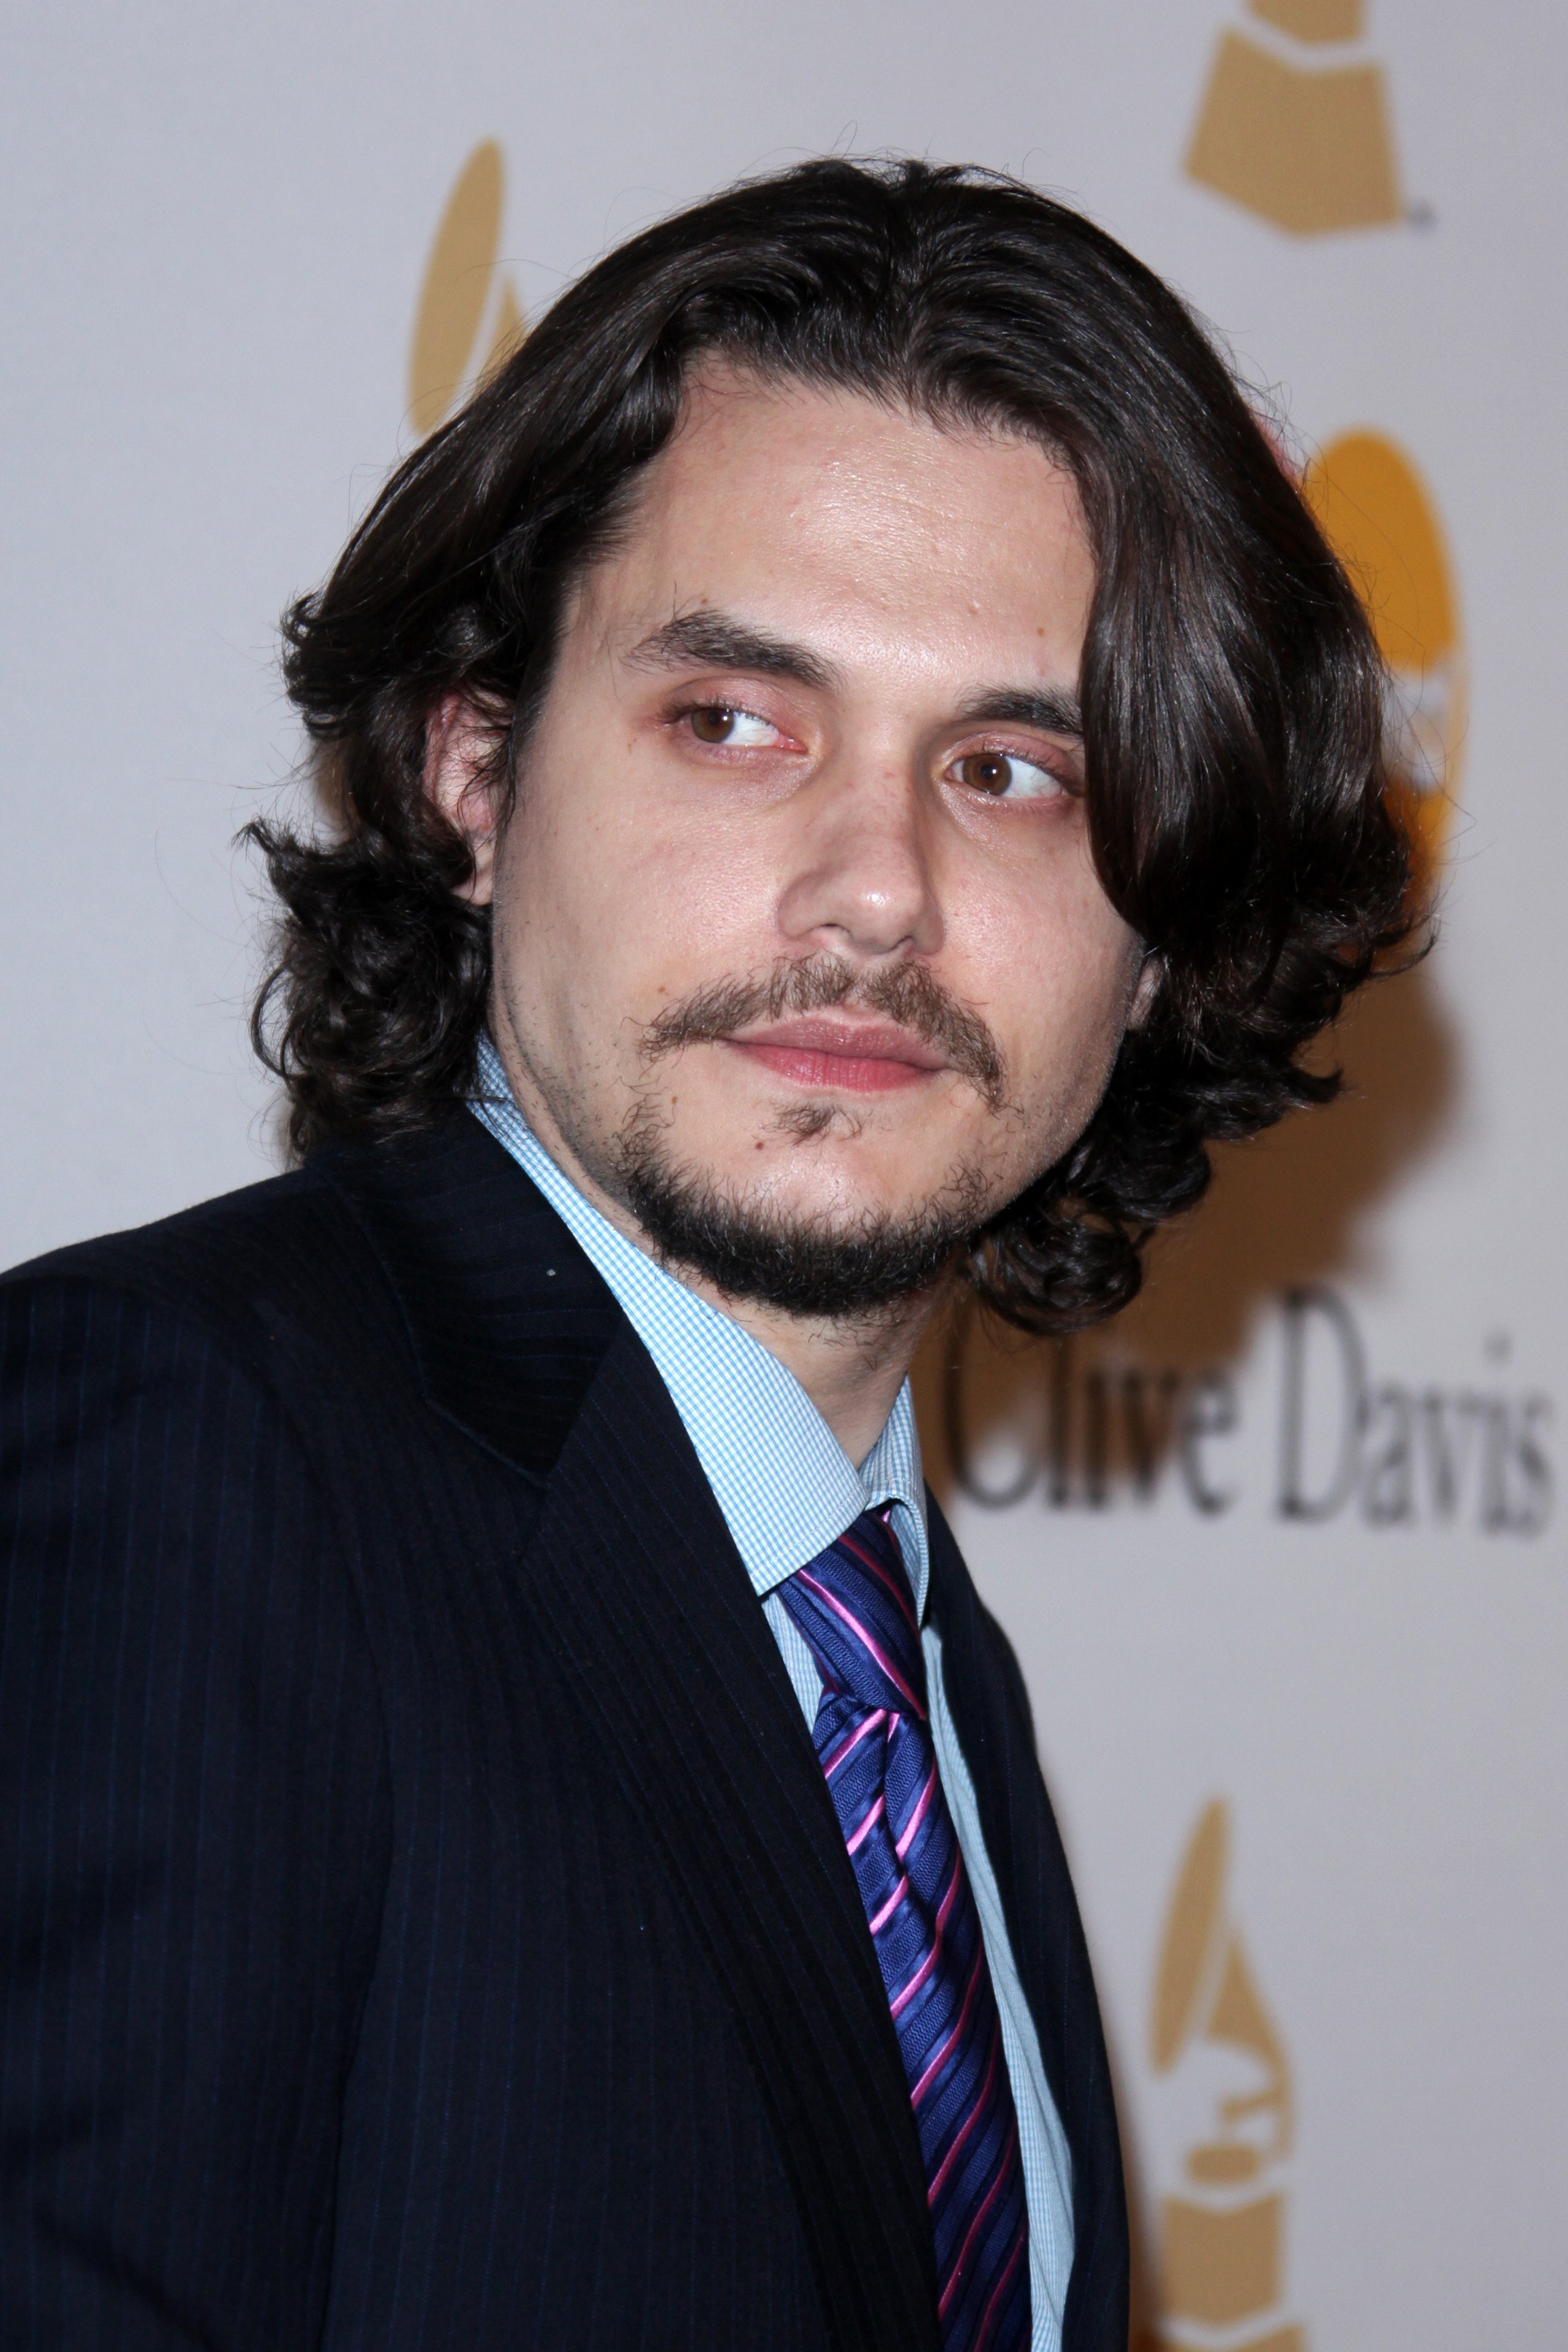 John Mayer pictured at the Pre-GRAMMY Gala And Salute To Industry Icons, 2011, California. | Photo: Shutterstock